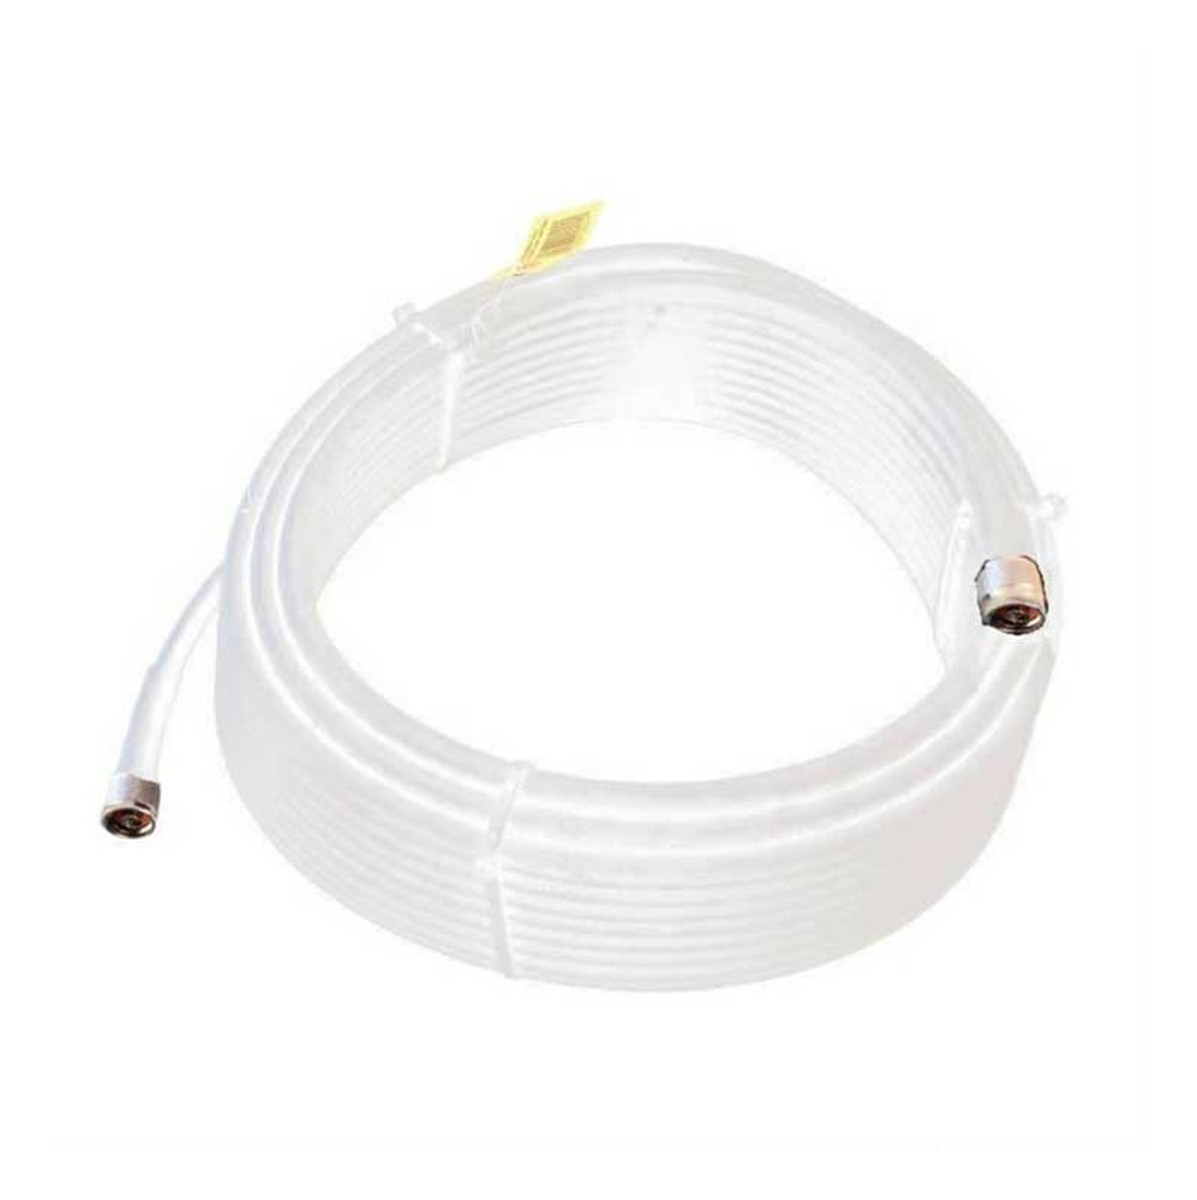 weBoost Wilson 400 N-male / N-male 75ft White Cable | 952475